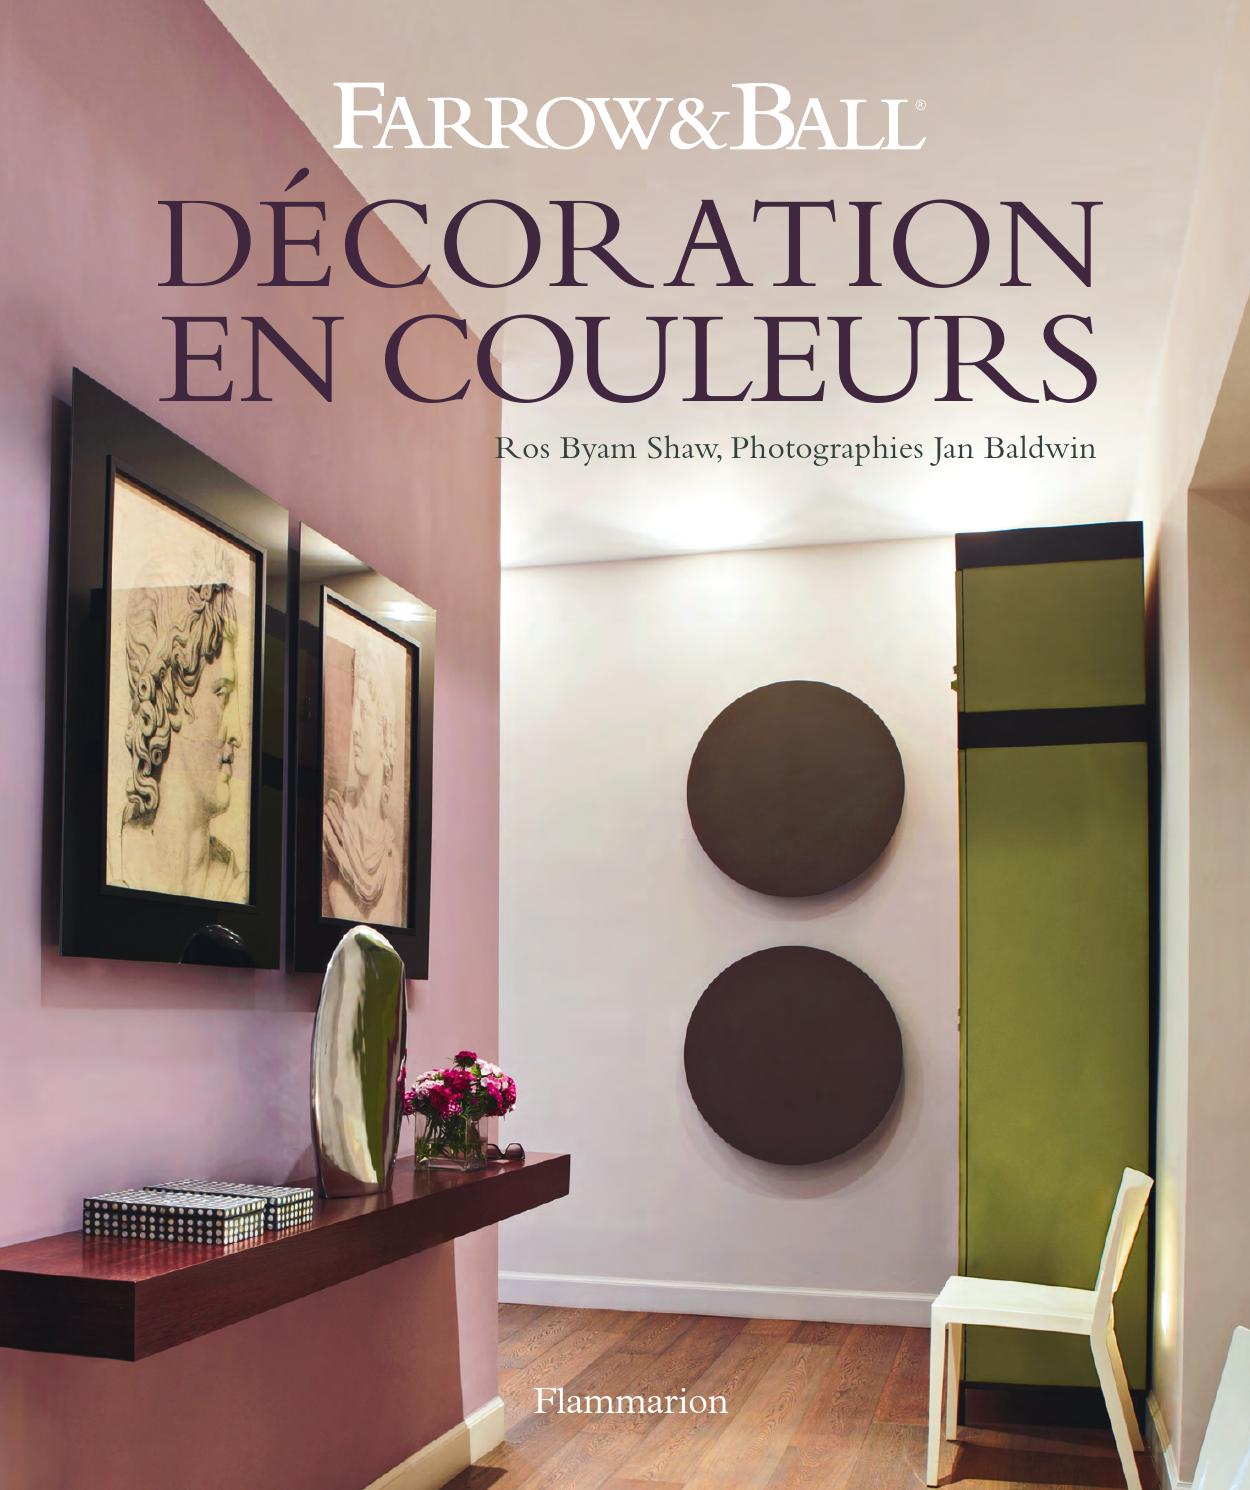 d coration en couleurs by flammarion groupe issuu. Black Bedroom Furniture Sets. Home Design Ideas